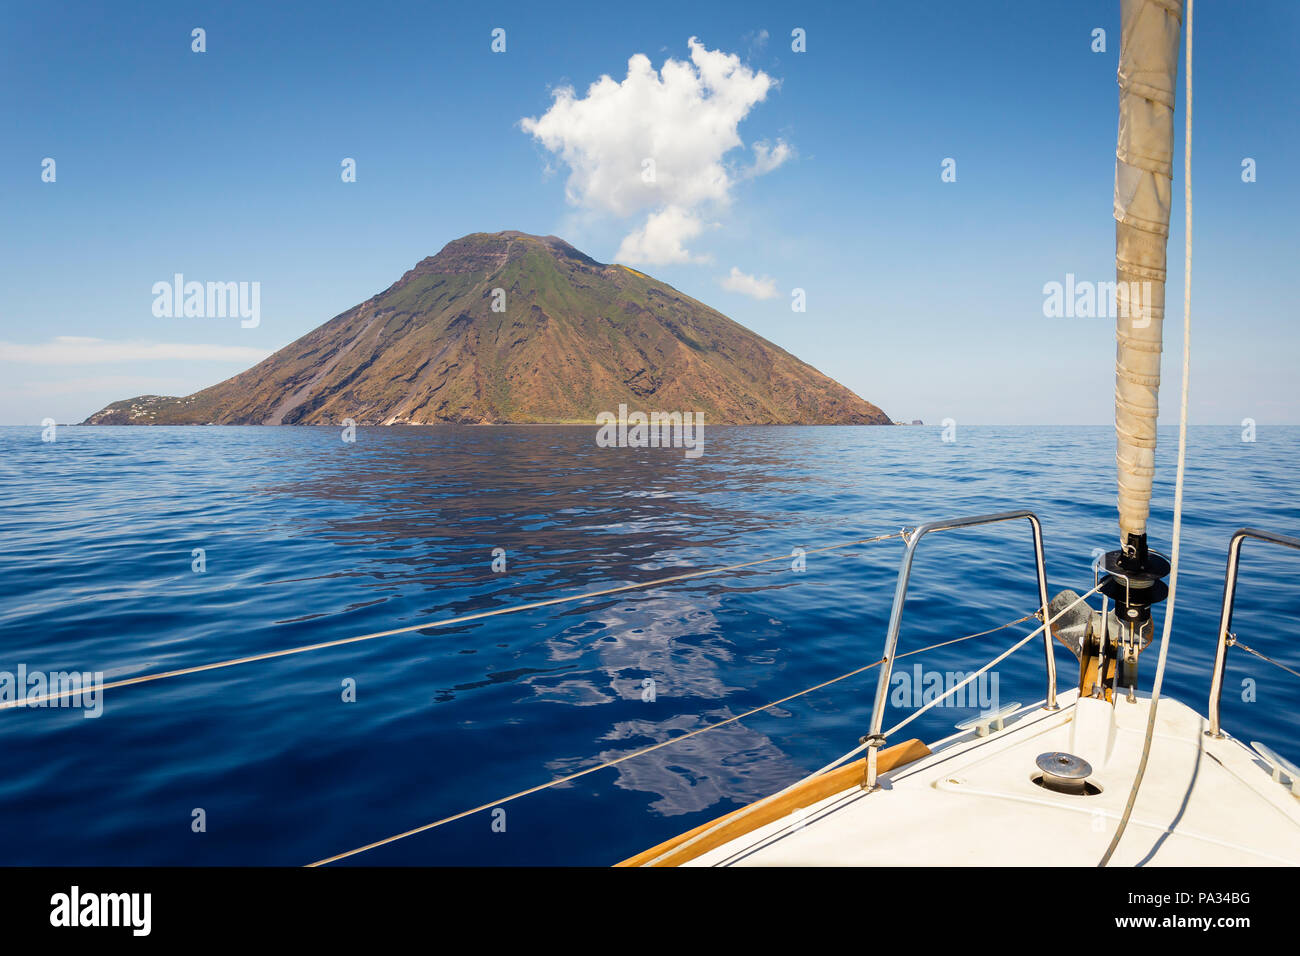 Sailboat approaches the volcanic island of Stromboli, Aeolian Islands, Sicily. - Stock Image